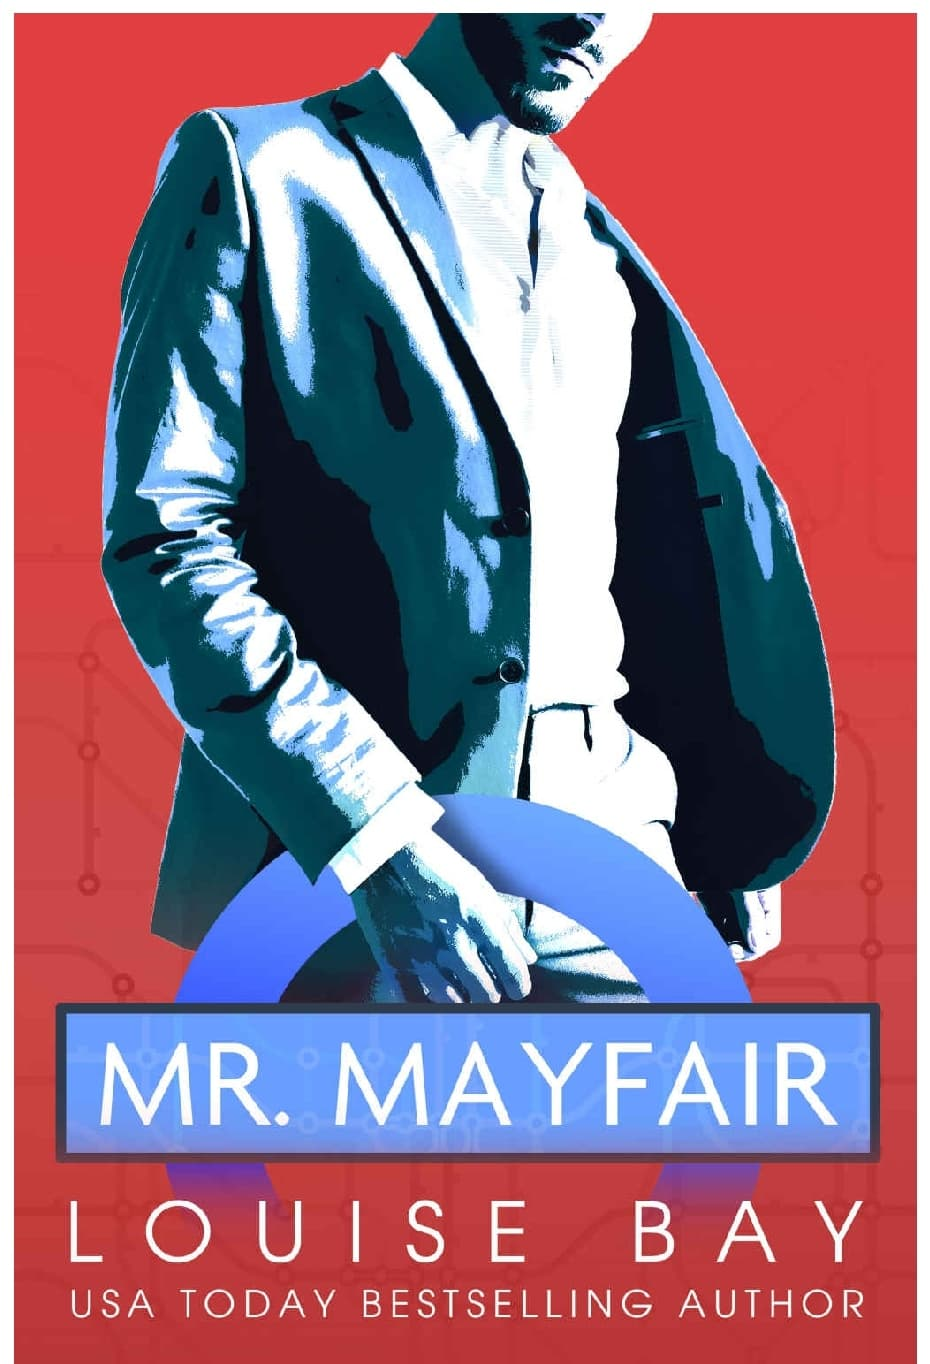 review of Mr. Mayfair by Louise Bay